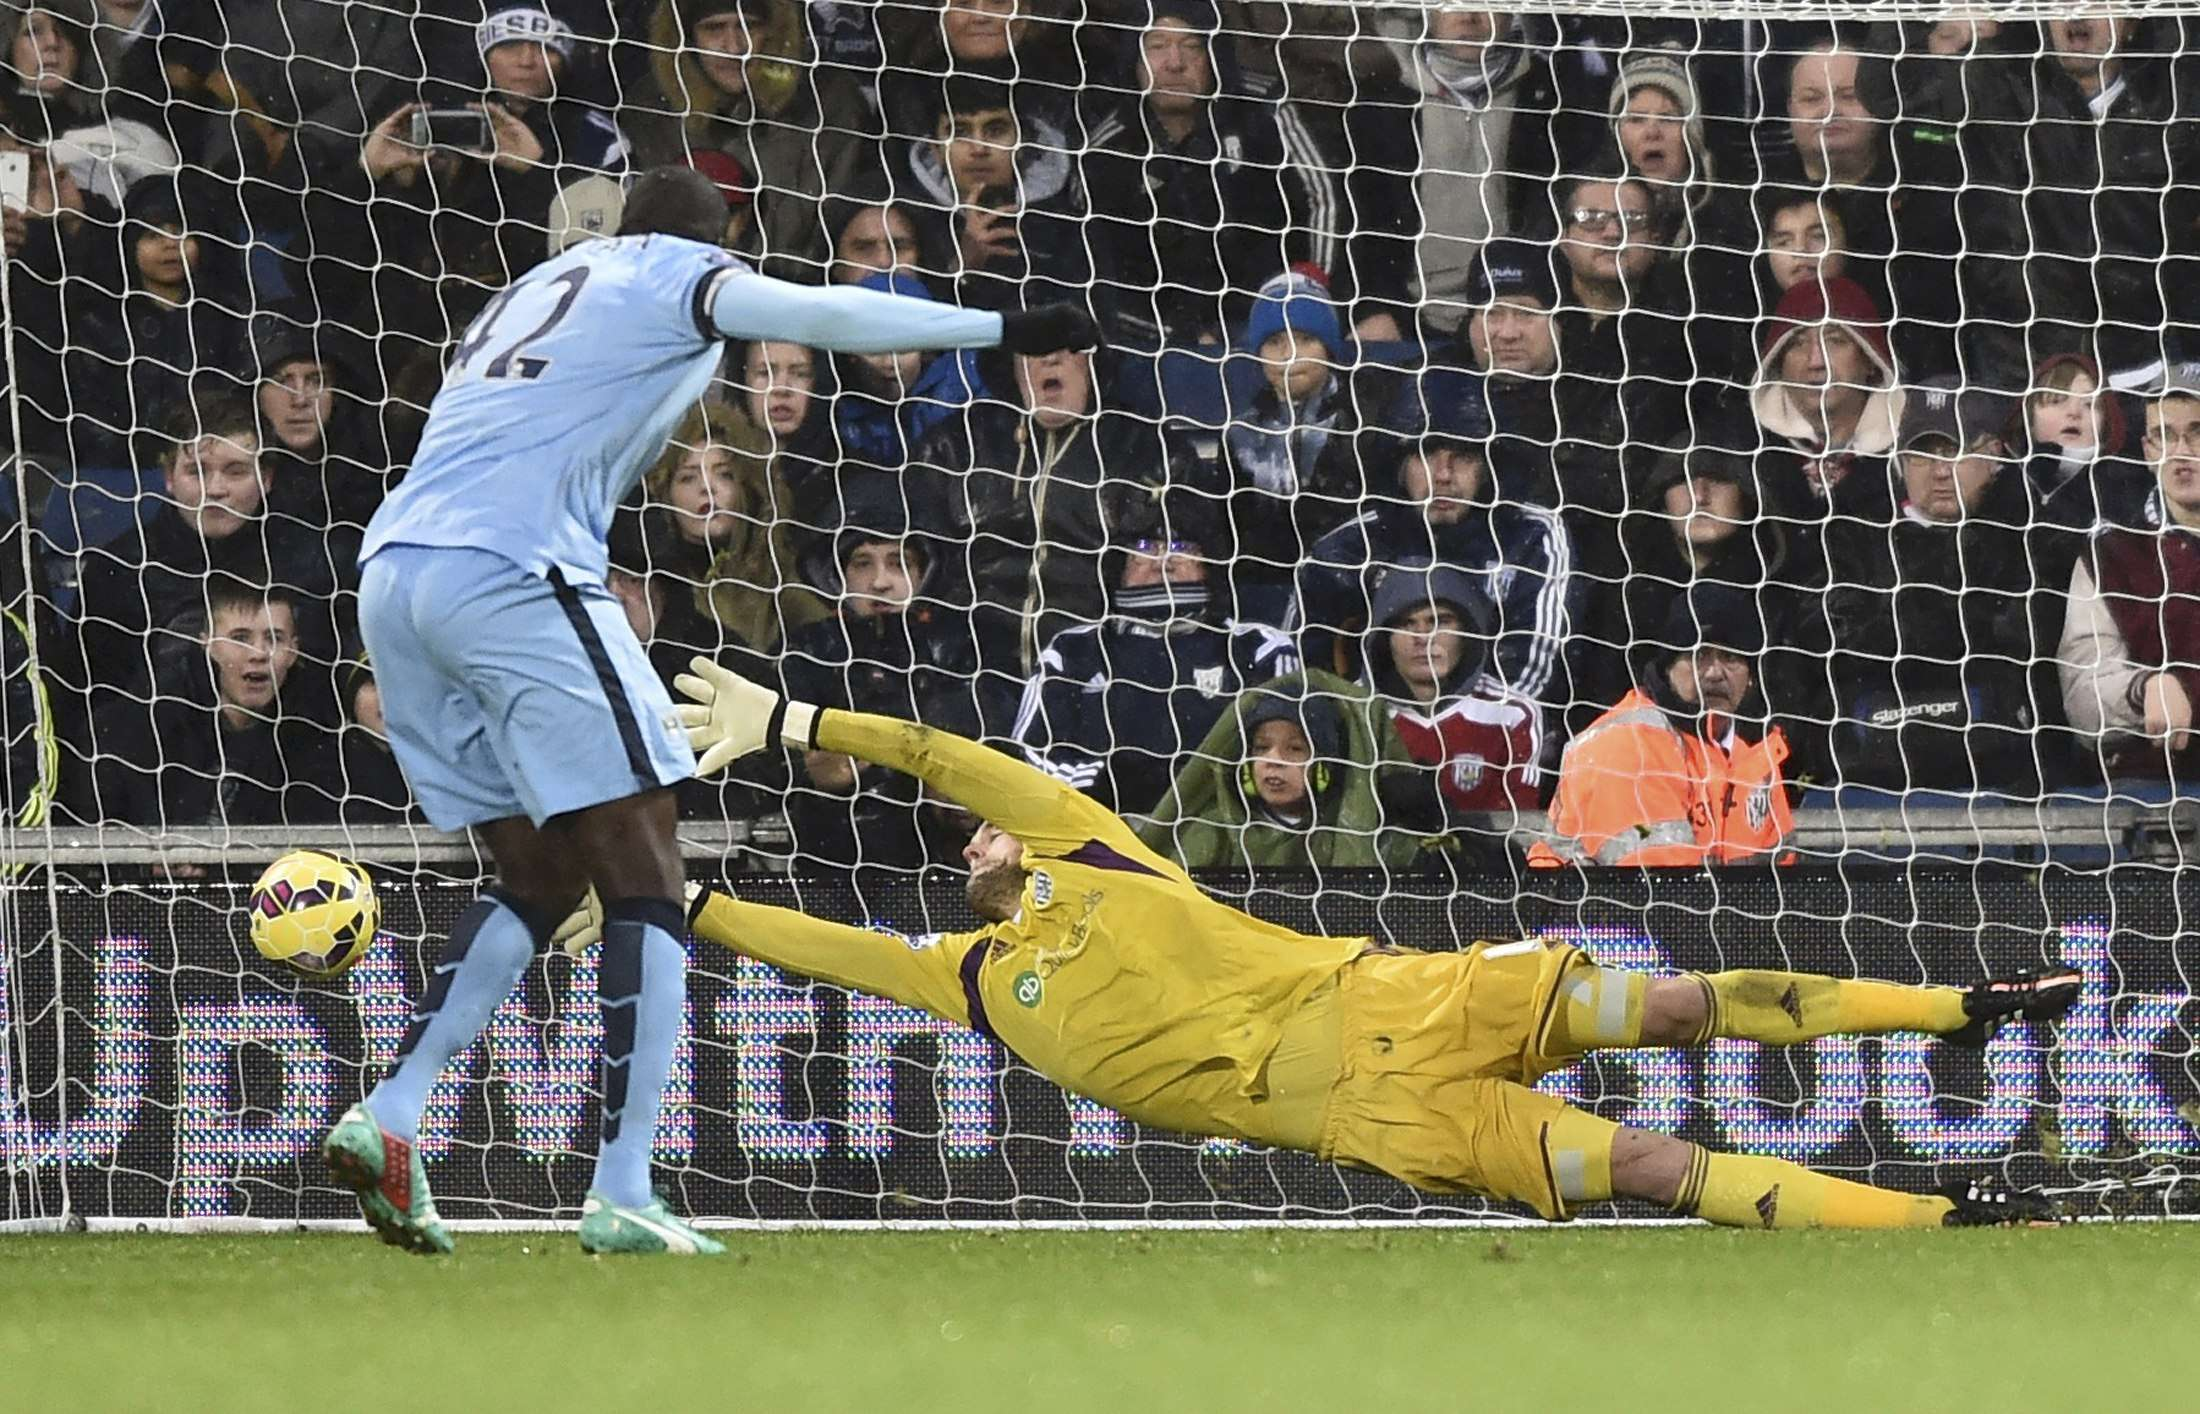 Manchester City's Yaya Toure shoots to score a goal from a penalty during their English Premier League soccer match against West Bromwich Albion at The Hawthorns in West Bromwich, central England December 26, 2014. REUTERS/Toby Melville (BRITAIN - Tags: SOCCER SPORT) FOR EDITORIAL USE ONLY. NOT FOR SALE FOR MARKETING OR ADVERTISING CAMPAIGNS. EDITORIAL USE ONLY. NO USE WITH UNAUTHORIZED AUDIO, VIDEO, DATA, FIXTURE LISTS, CLUB/LEAGUE LOGOS OR 'LIVE' SERVICES. ONLINE IN-MATCH USE LIMITED TO 45 IMAGES, NO VIDEO EMULATION. NO USE IN BETTING, GAMES OR SINGLE CLUB/LEAGUE/PLAYER PUBLICATIONS. Foto: TOBY MELVILLE/REUTERS